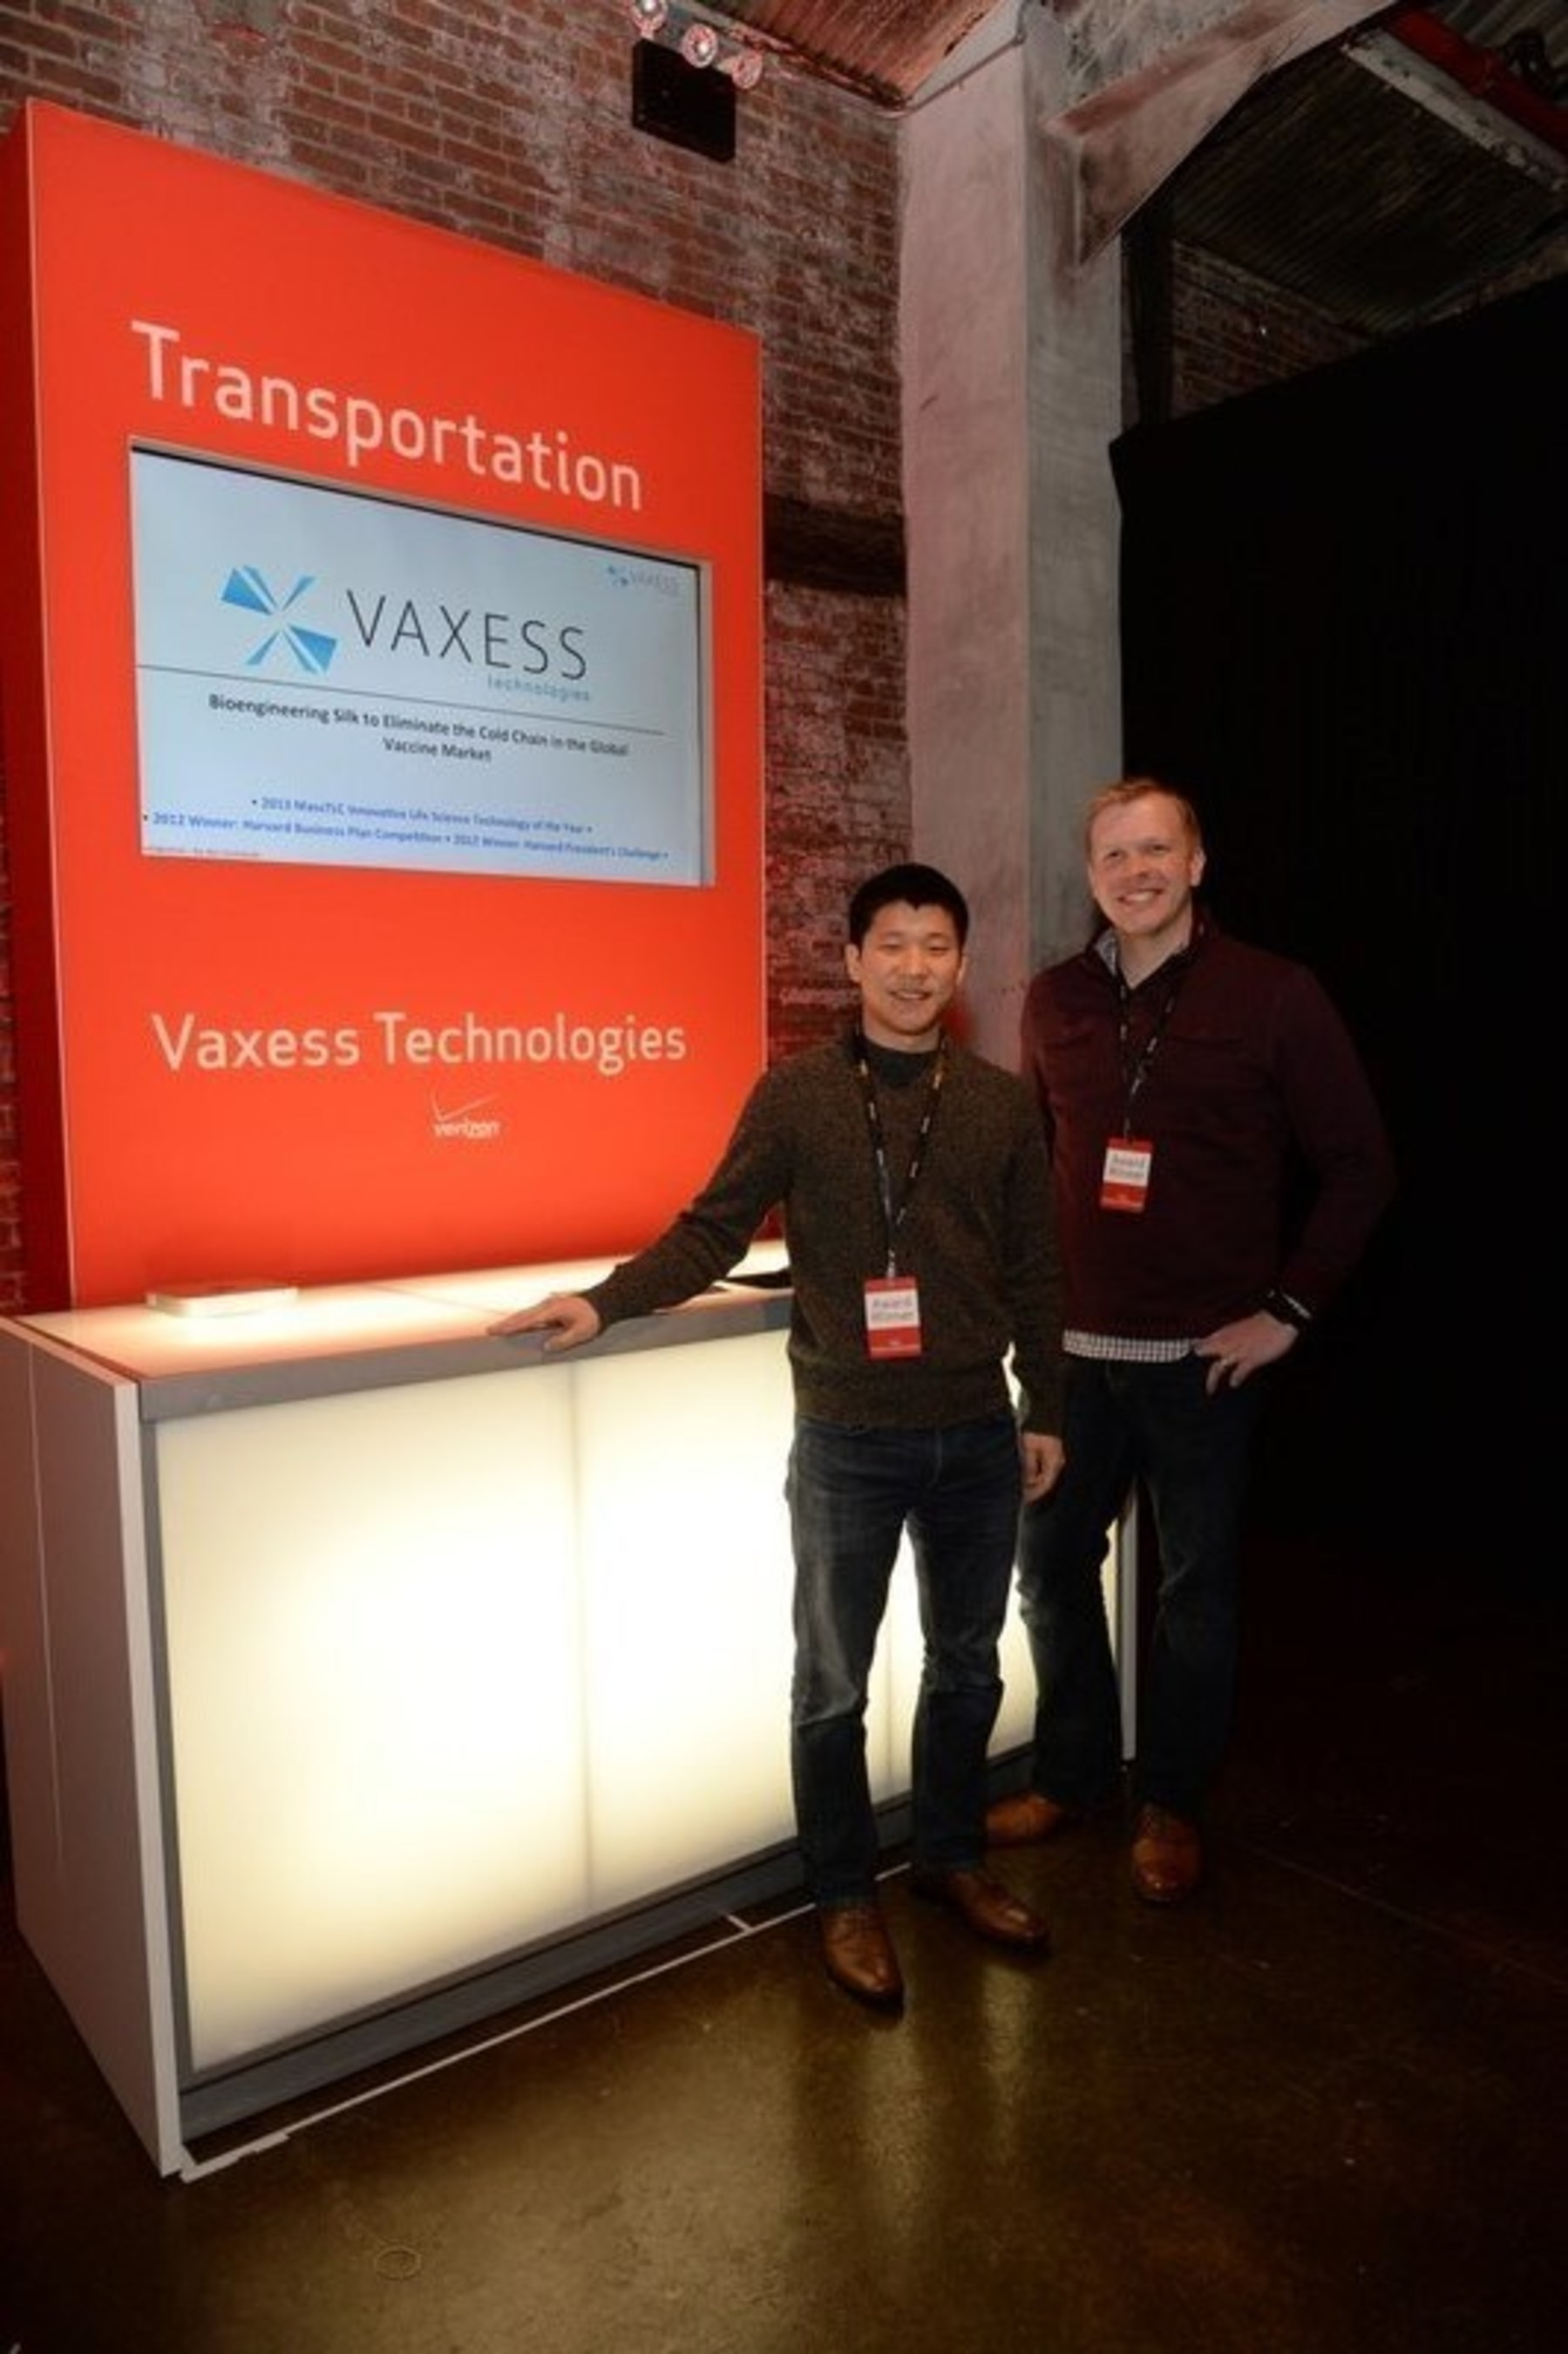 $1M Winner in the transportation category: Vaxess Technologies - Each year, more than 2.4 million people die from diseases that could be prevented by vaccines, and more than 20% of children born each year do not receive proper immunization. This occurs because 97% of vaccines require cold storage between 2° and 8°C, and a lack of cold chain infrastructure limits this access. Vaxess Technologies, based in Cambridge, Mass., has created a soluble, silk-stabilized vaccine that can be shipped without refrigeration, and extend the global reach and access to vaccine products.